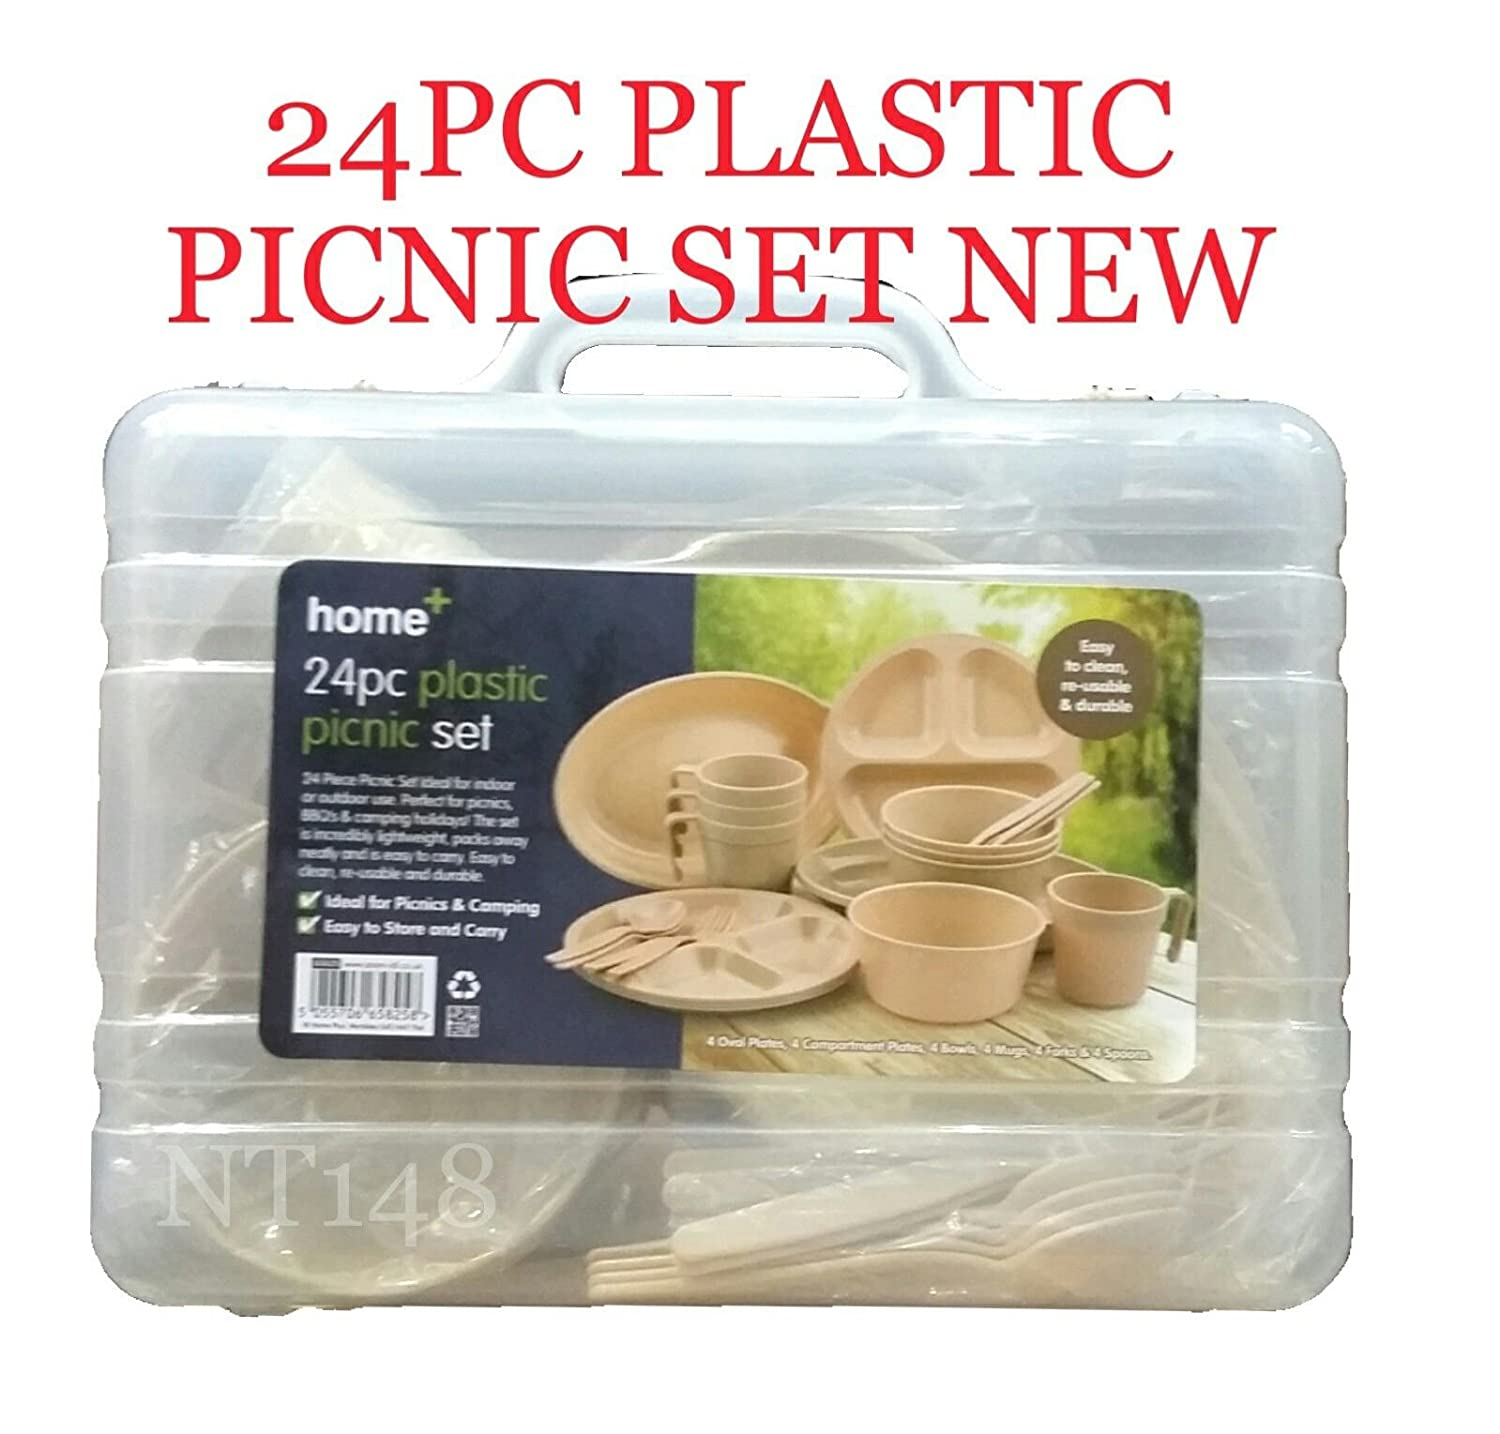 BS 24PC REUSABLE PLASTIC CAMPING PICNIC SET PLATES BOWLS GLASSES SPOONS FORKS UK HM